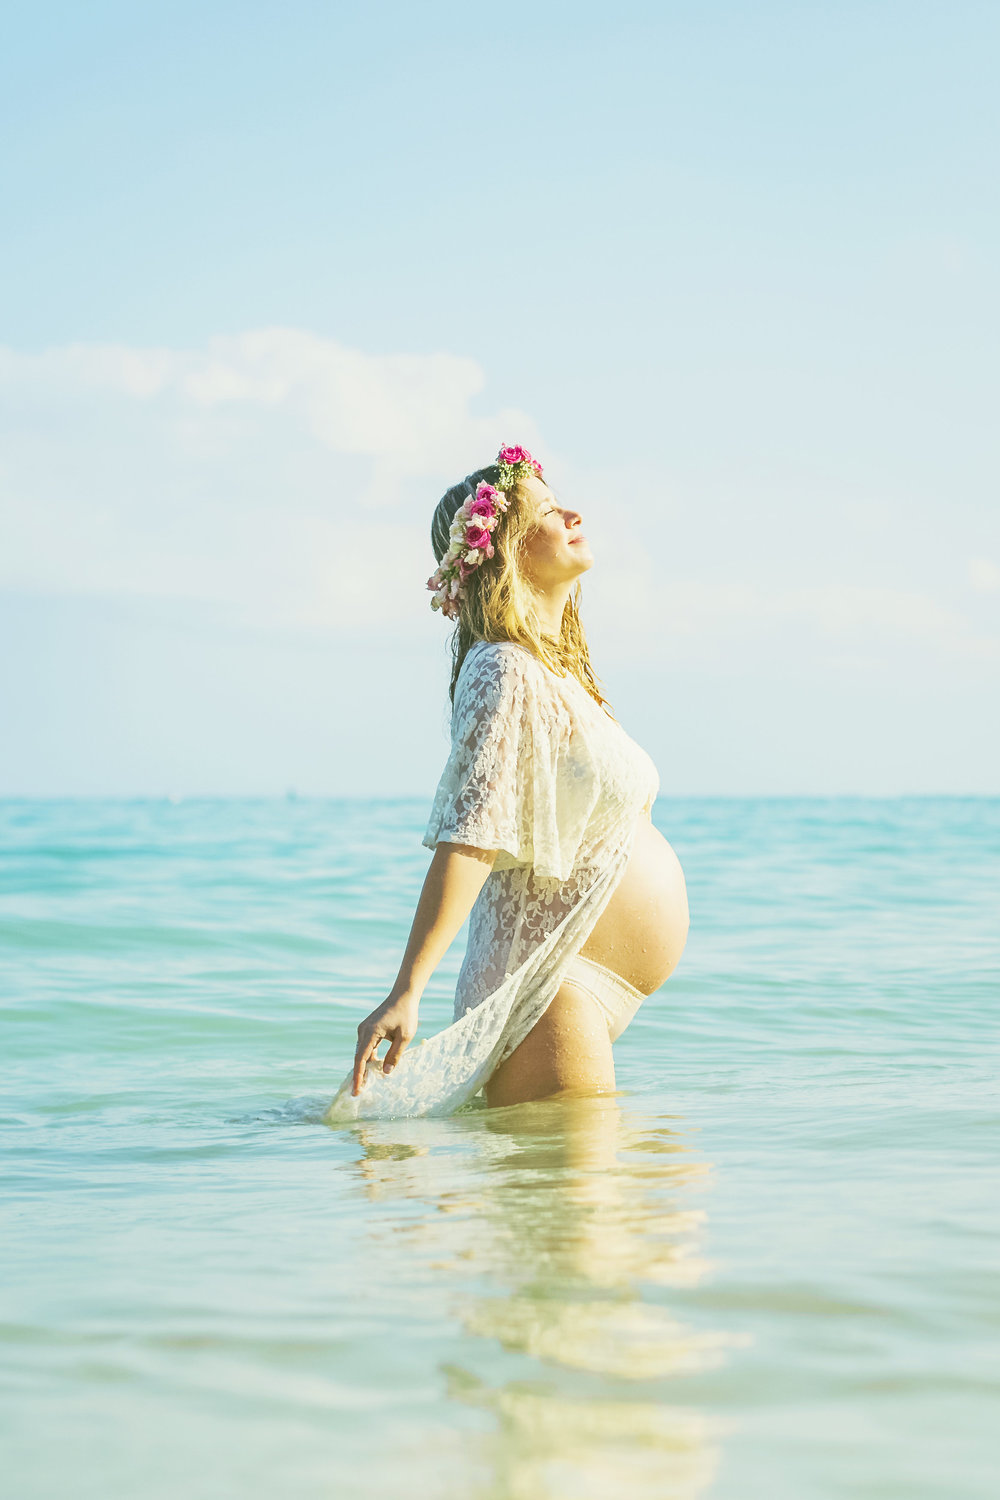 angie-diaz-photography-maui-family-maternity-kanaha-beach-23.jpeg